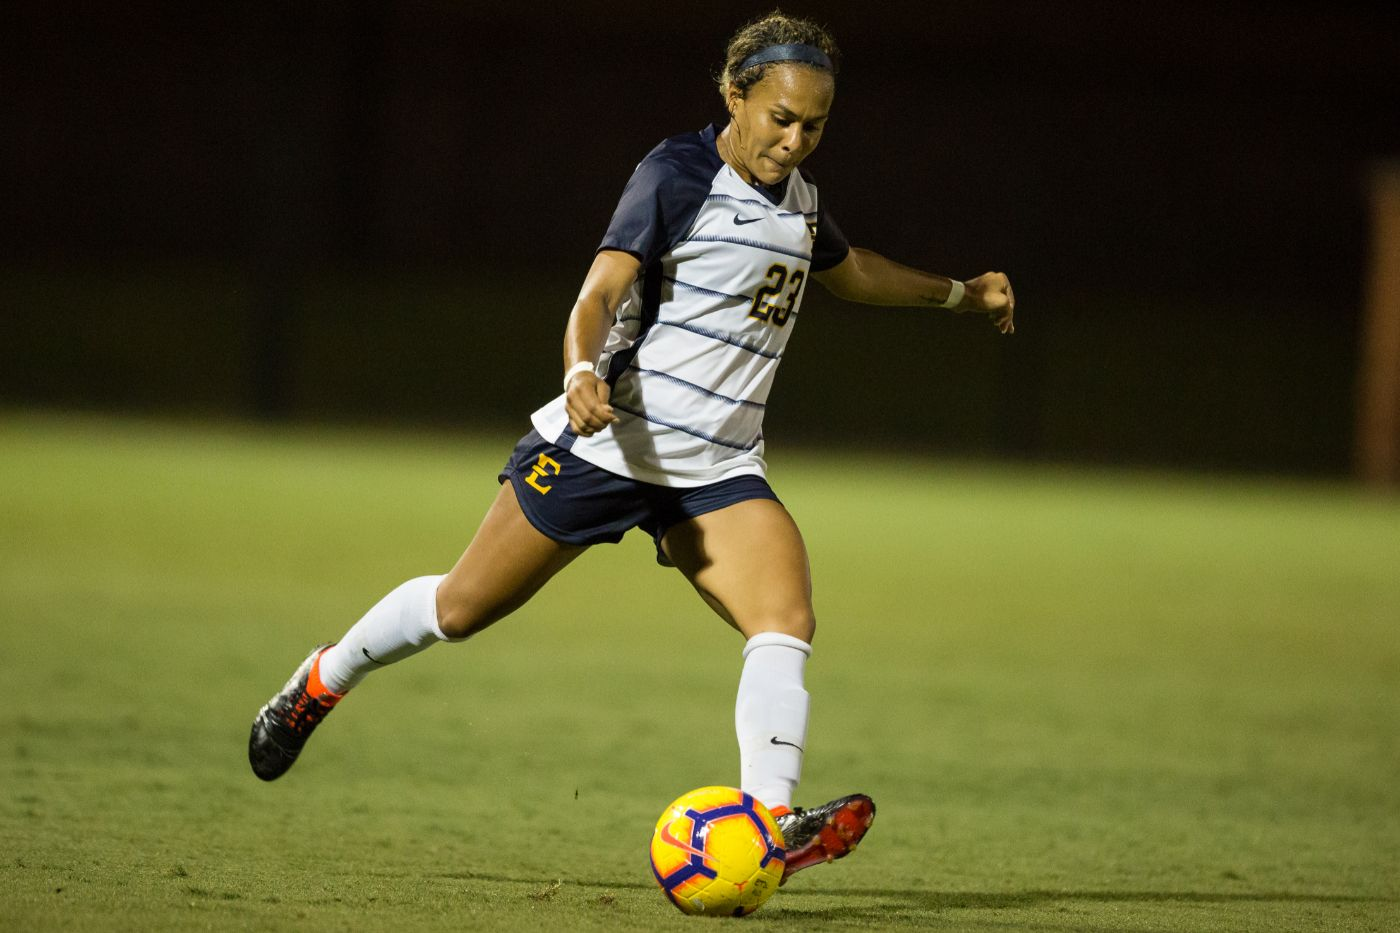 Bucs Unable to Overcome Early Radford Goals, Fall 2-0